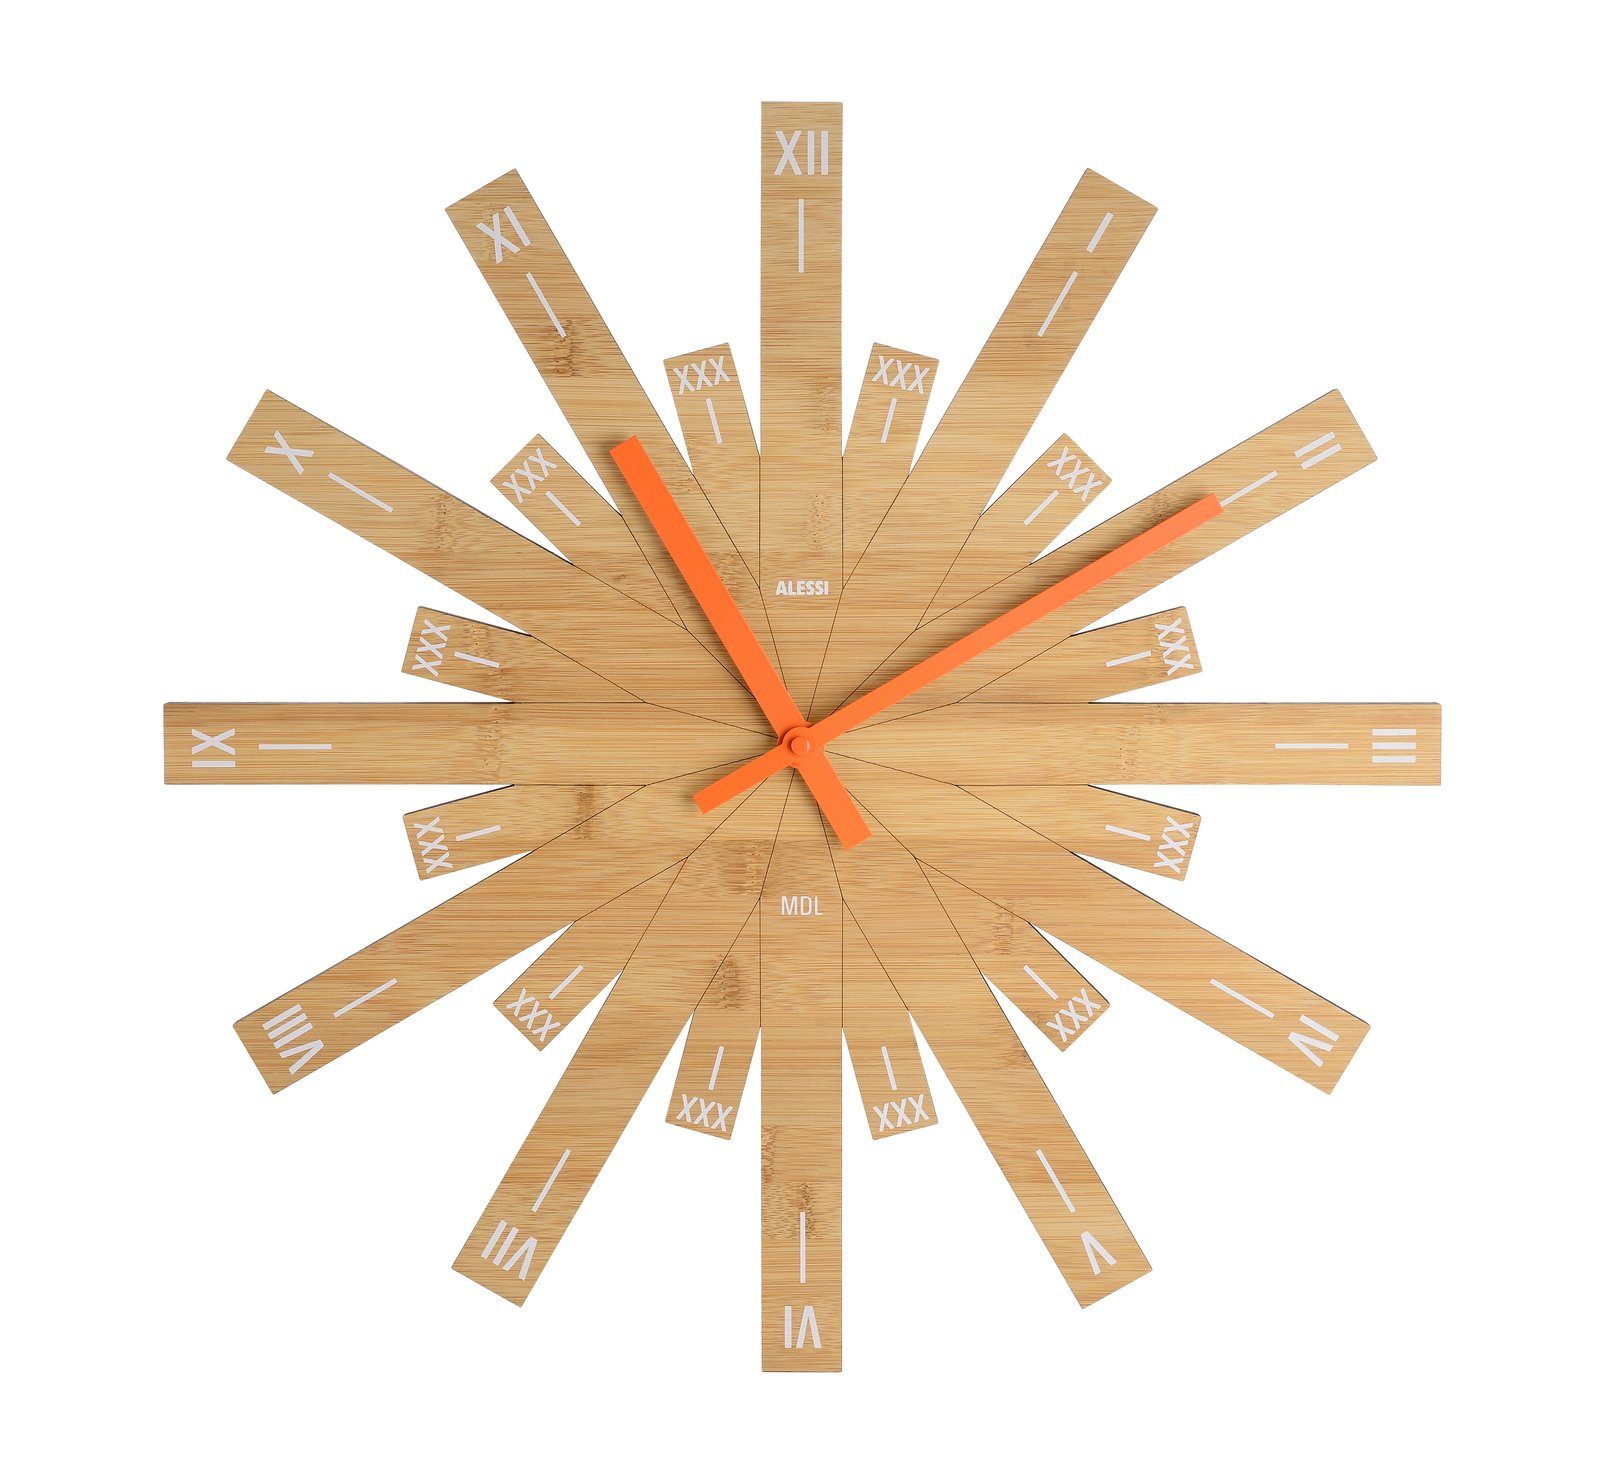 Raggiante, 2017.  A recent creation  for Italian manufacturer Alessi, this bamboo clock features Roman numerals and a distinctive form with a diameter of nearly  20 inches. alessi.com